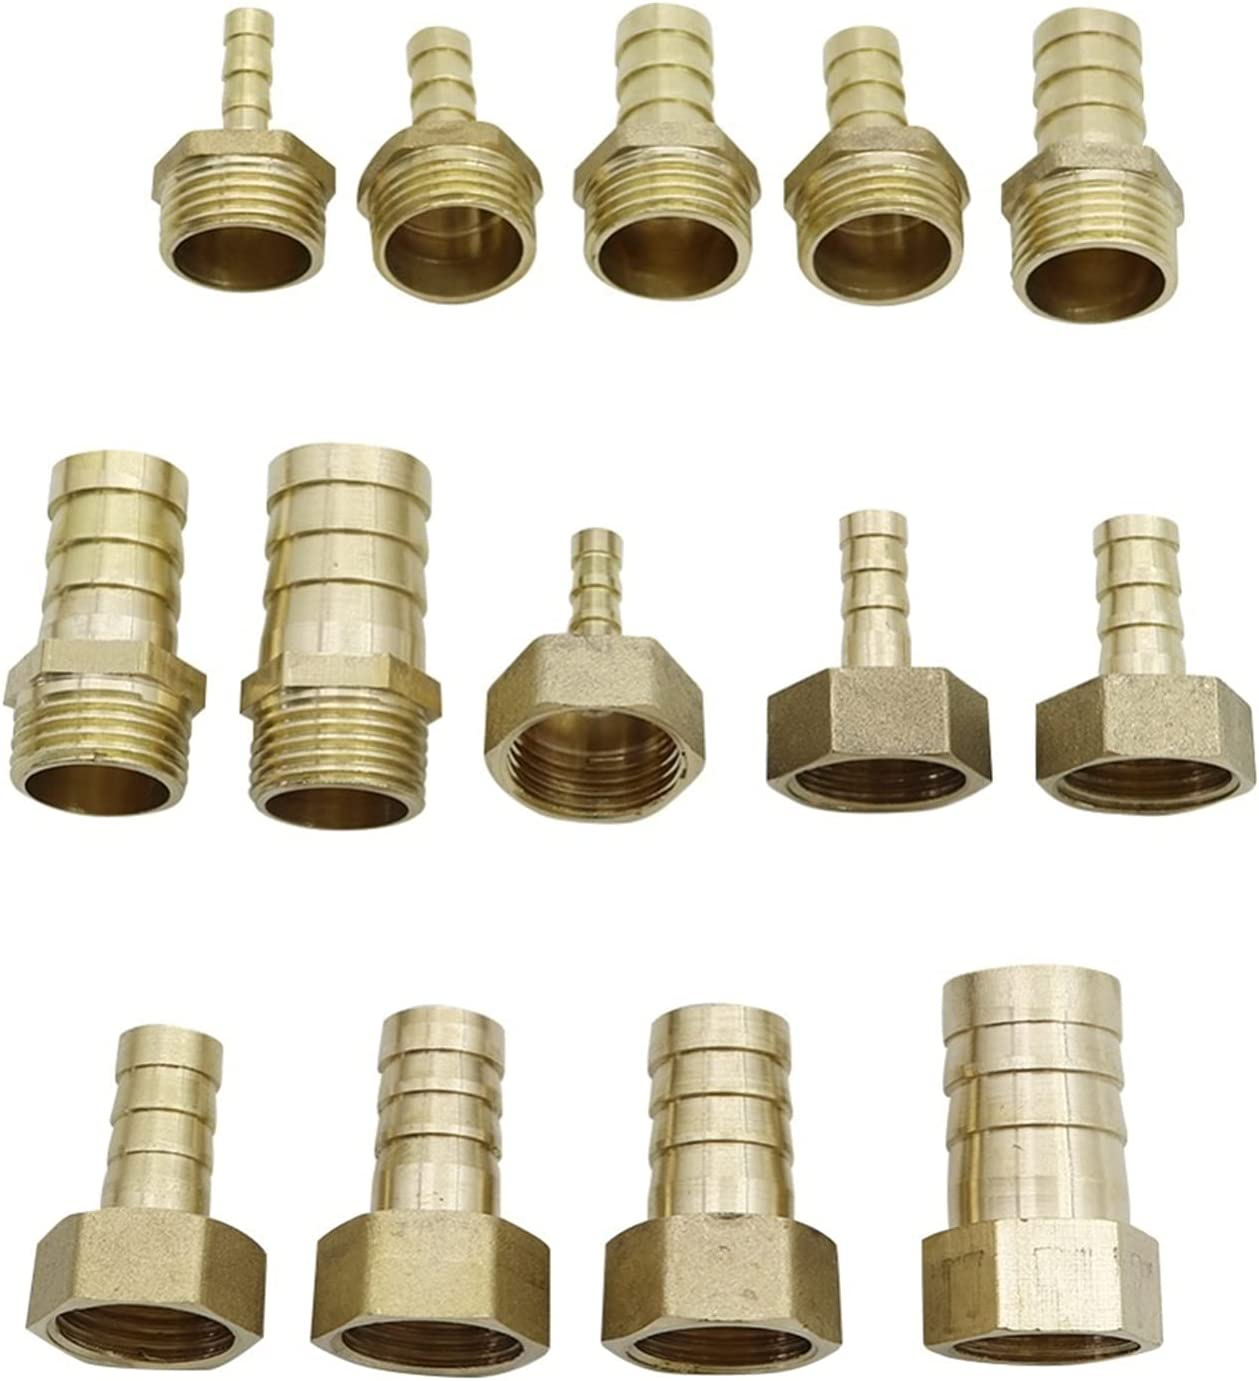 Leakproof Hose Fittings 6-19mm Barb Pipe 2